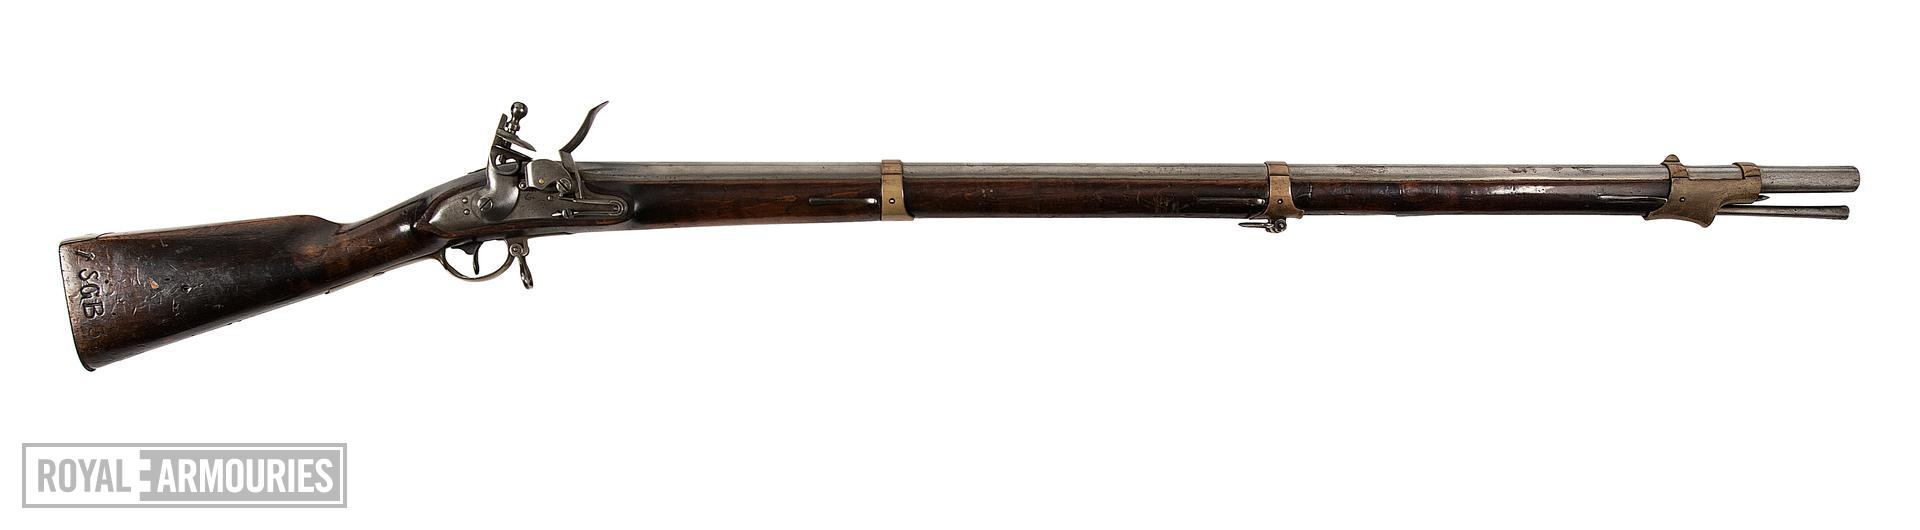 Model 1809  flintlock muzzle-loading military musket, about 1810, German / Prussian (XII.239)